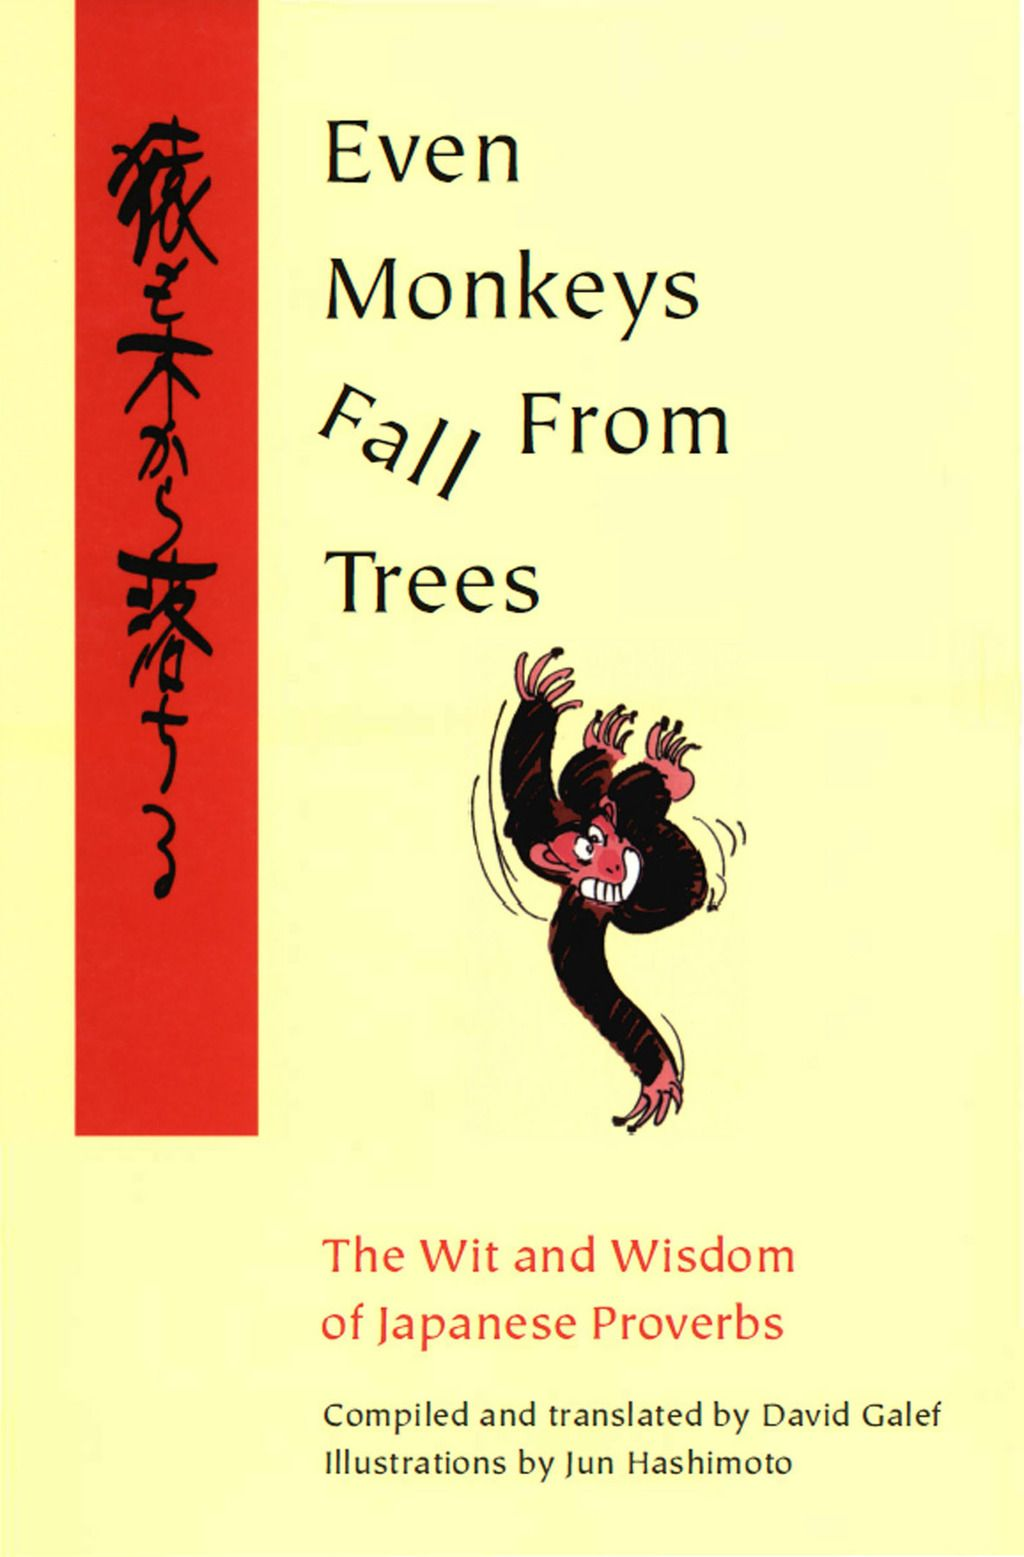 Even monkeys fall from trees ebook wise quotes advice quotes japanese quotes